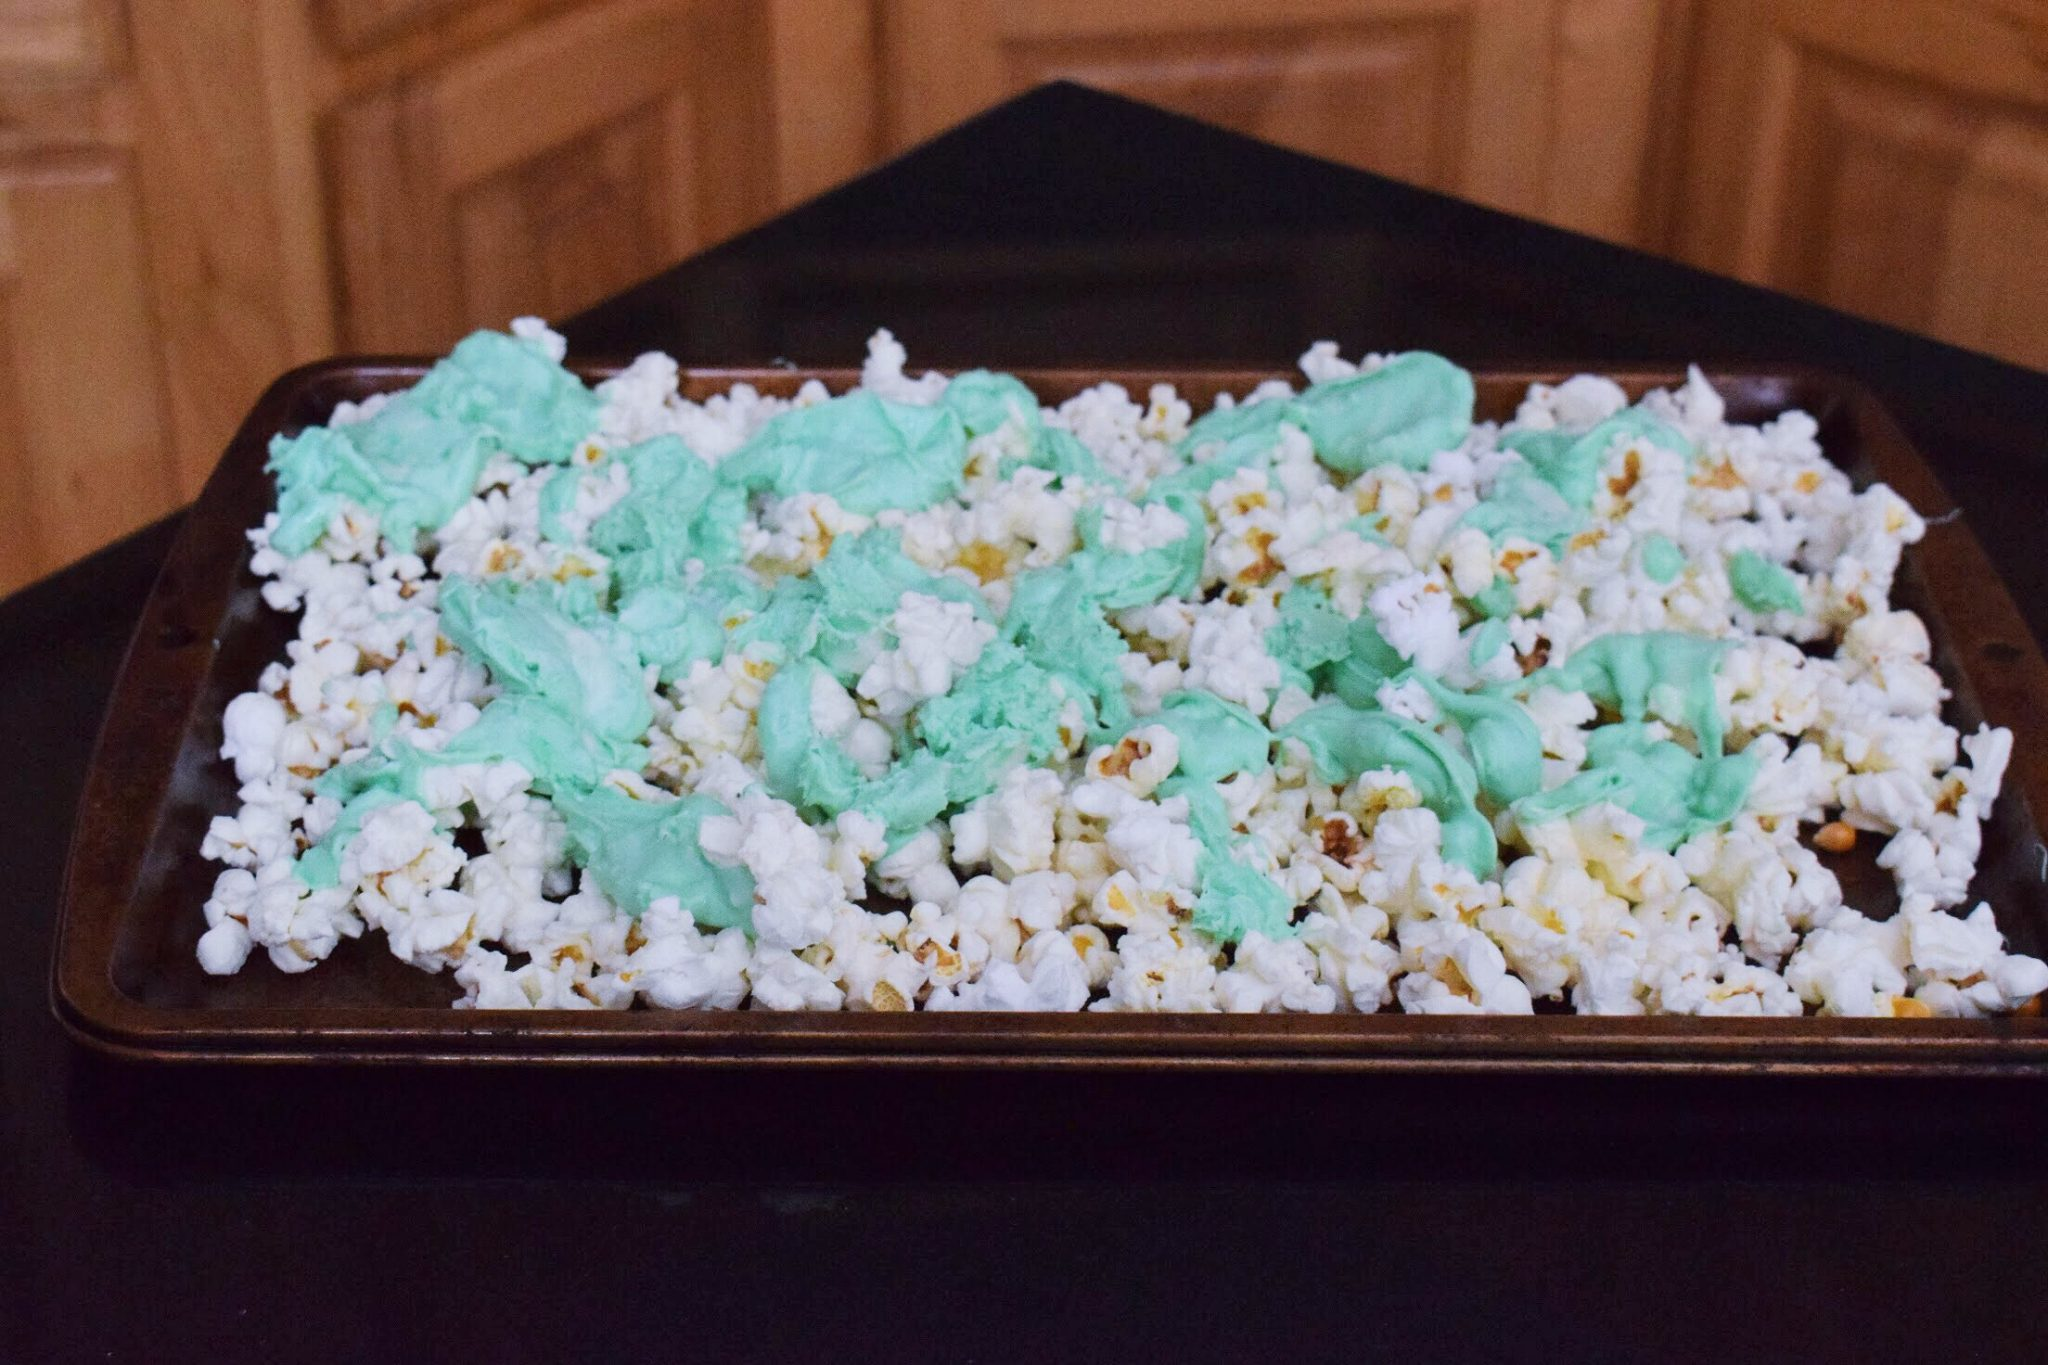 St. Patrick's Day Sweet Popcorn Mix